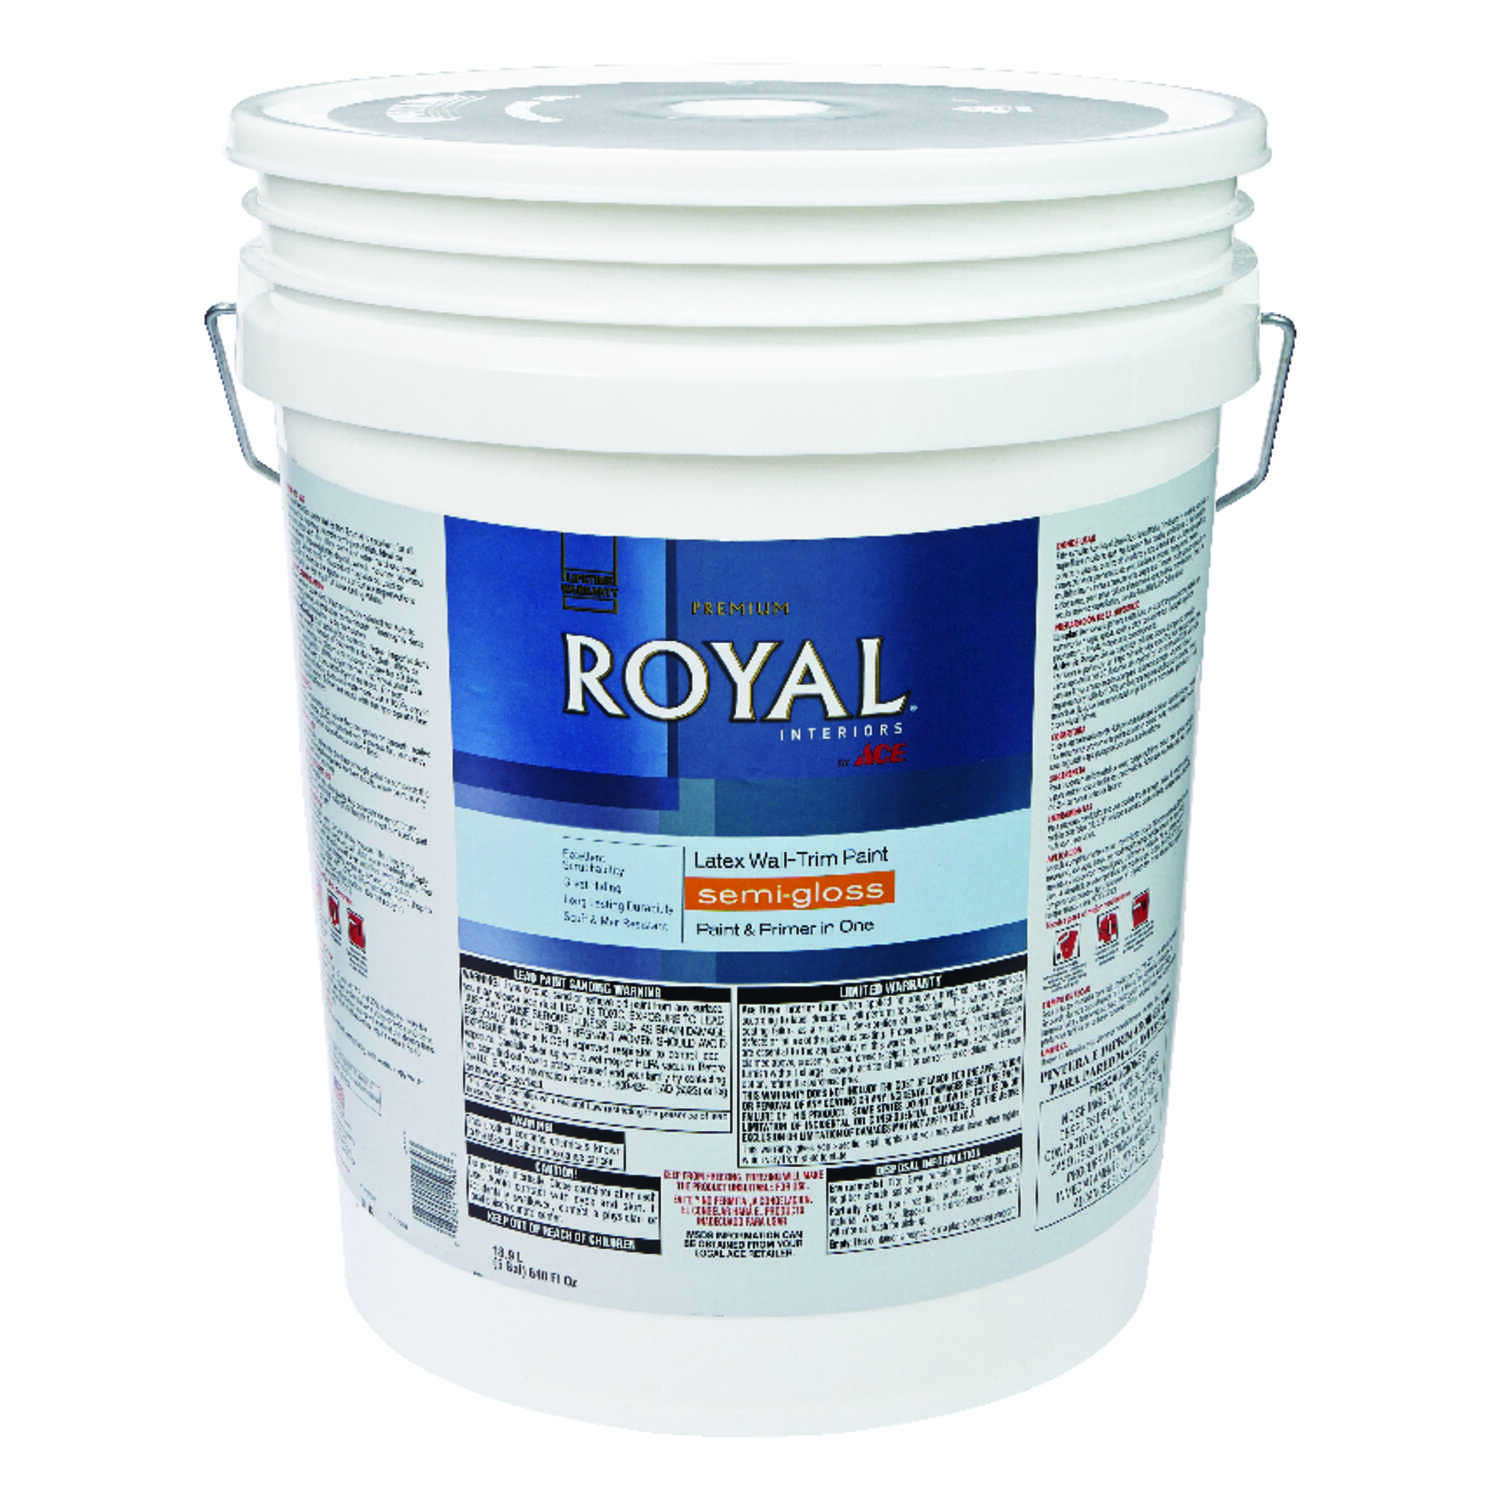 Ace  Royal  Semi-Gloss  High Hiding White  Vinyl Acetate/Ethylene  Interior Latex Wall+Trim Paint  5